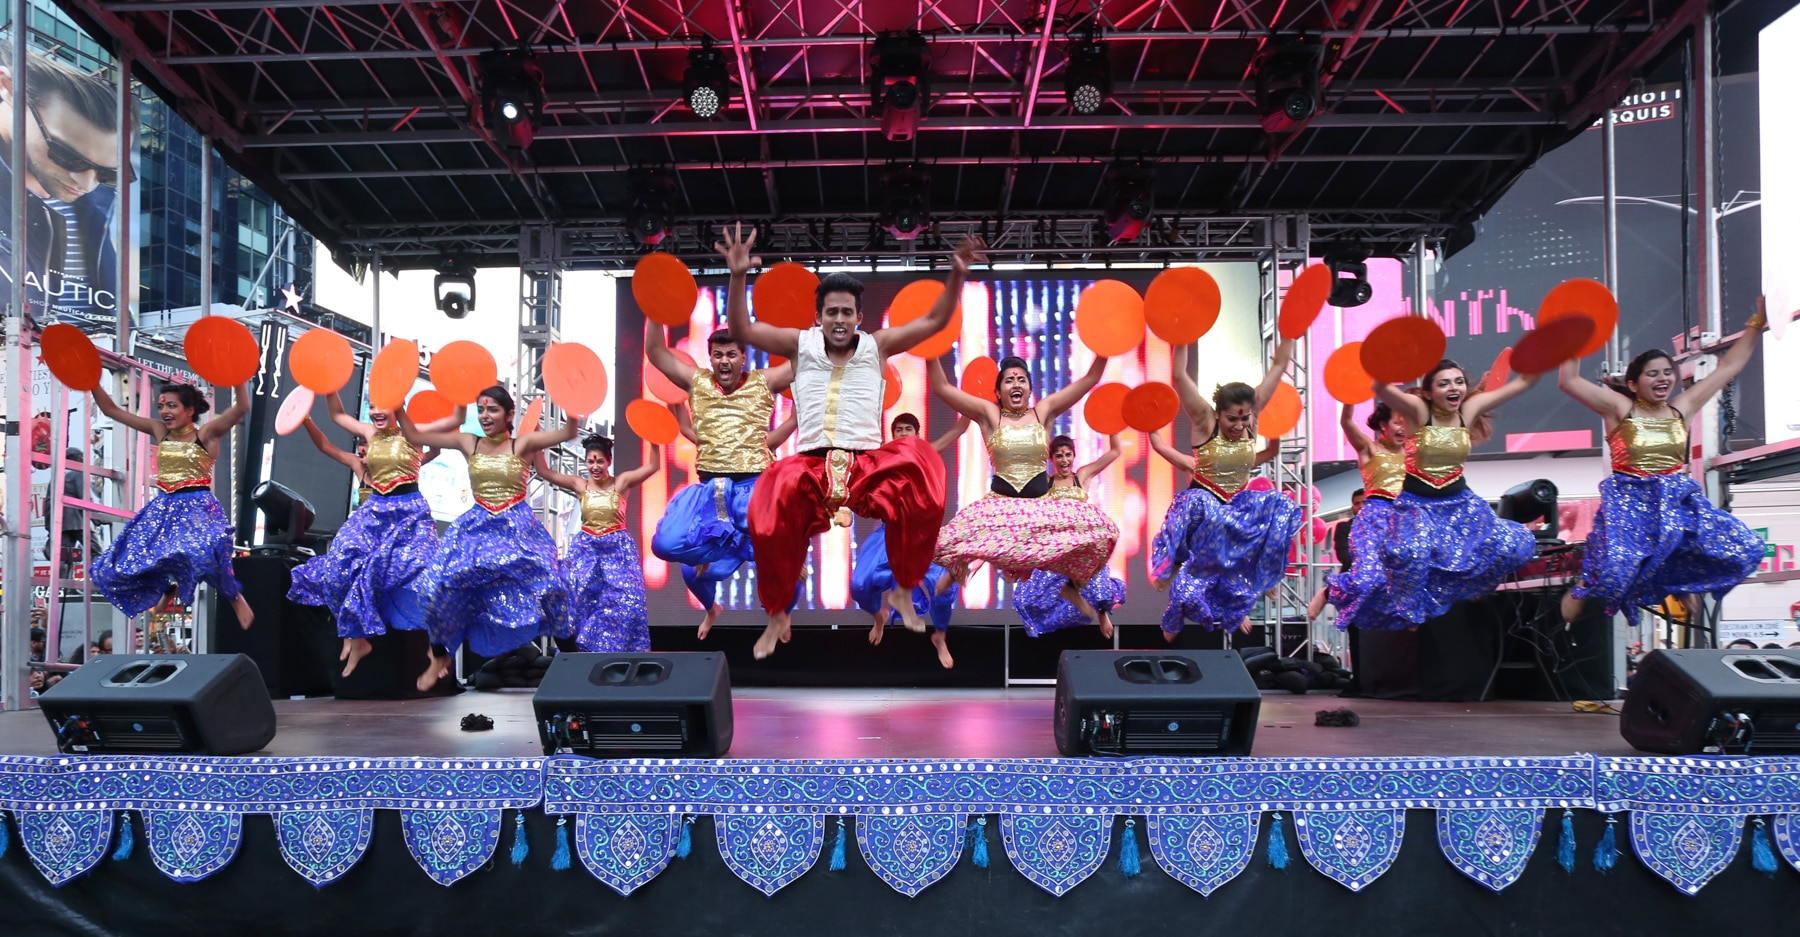 Indian dancers performing on a stage (Diwali at Times Square)